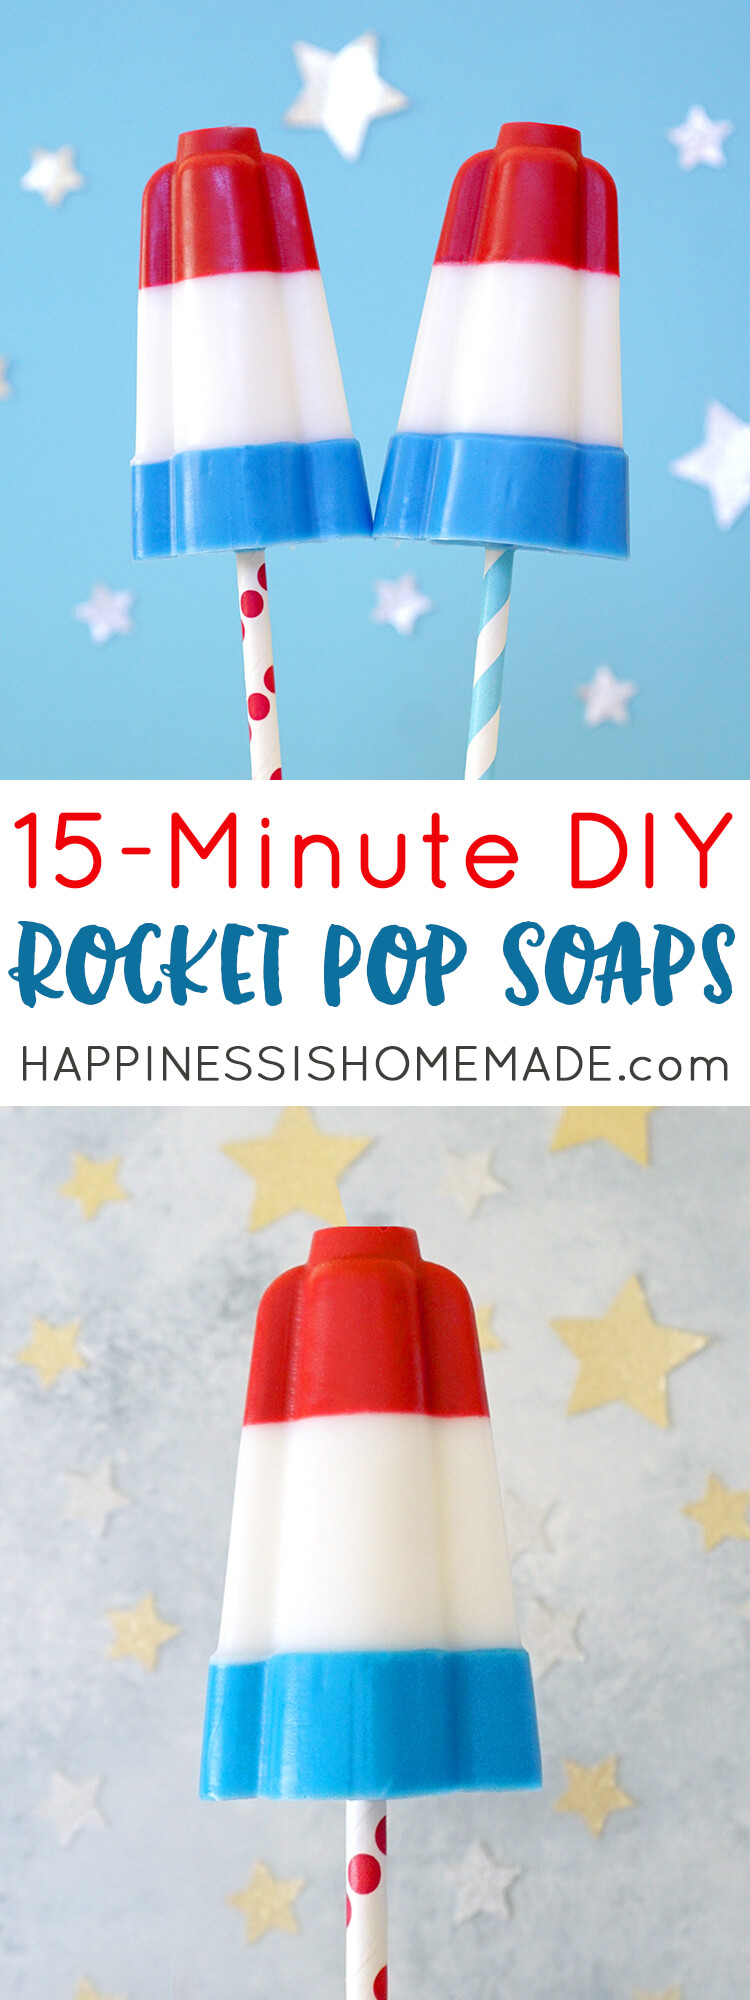 These fun red, white, and blue Rocket Pop Soaps, look just like the classic summer treat! Whip up a batch in just 15 minutes to wow your 4th of July guests! Makes a great gift, treat, or homemade party favor! via @hihomemadeblog